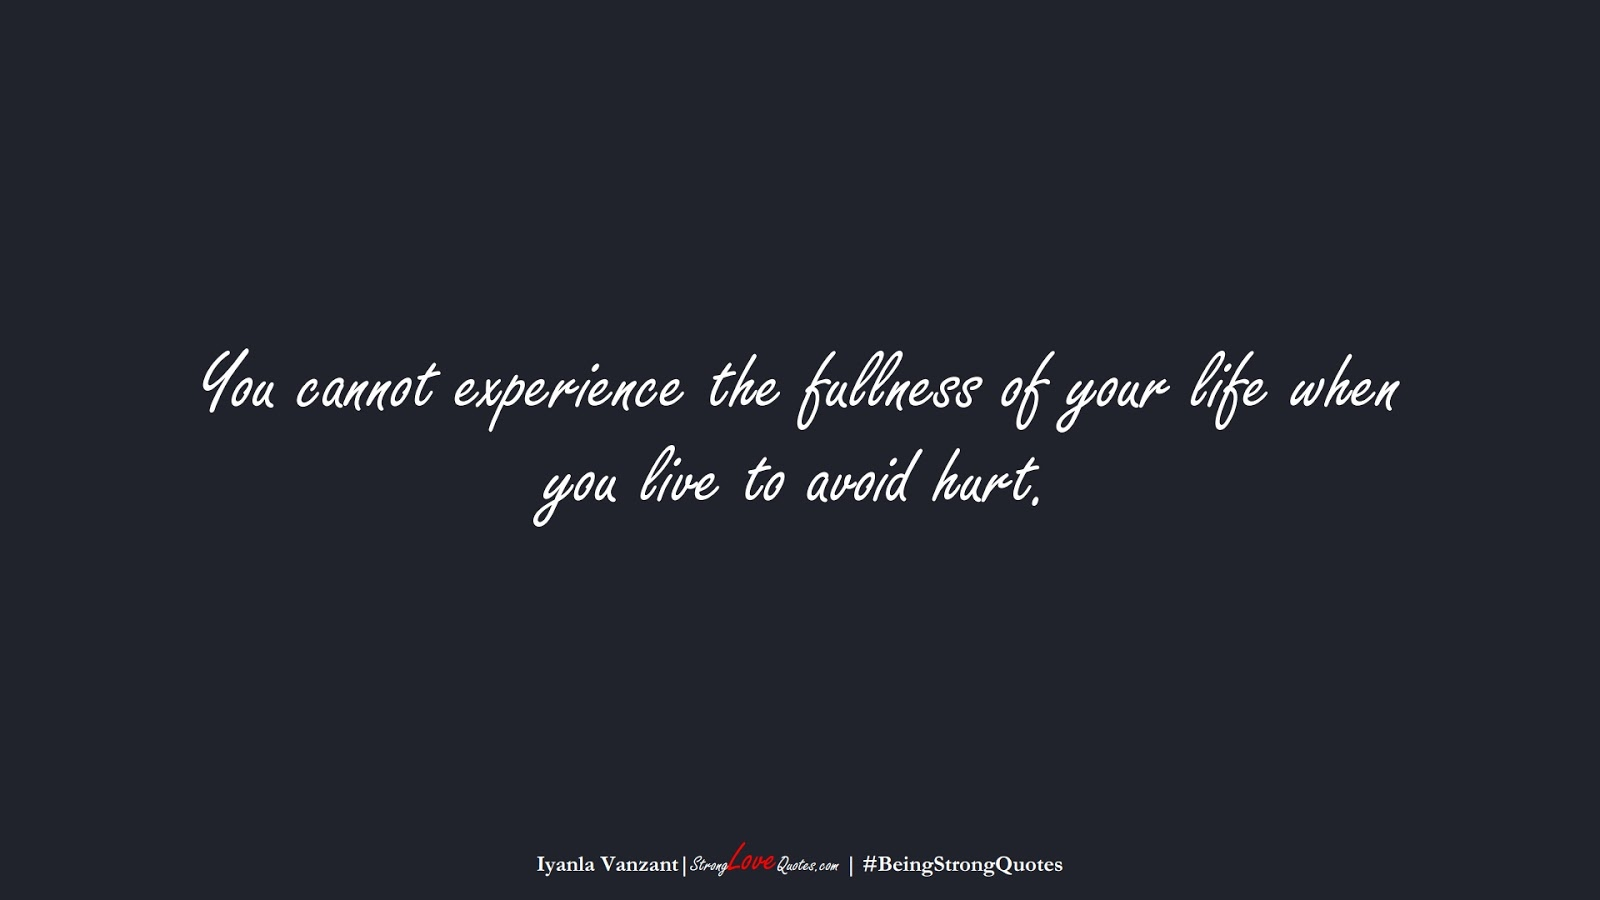 You cannot experience the fullness of your life when you live to avoid hurt. (Iyanla Vanzant);  #BeingStrongQuotes